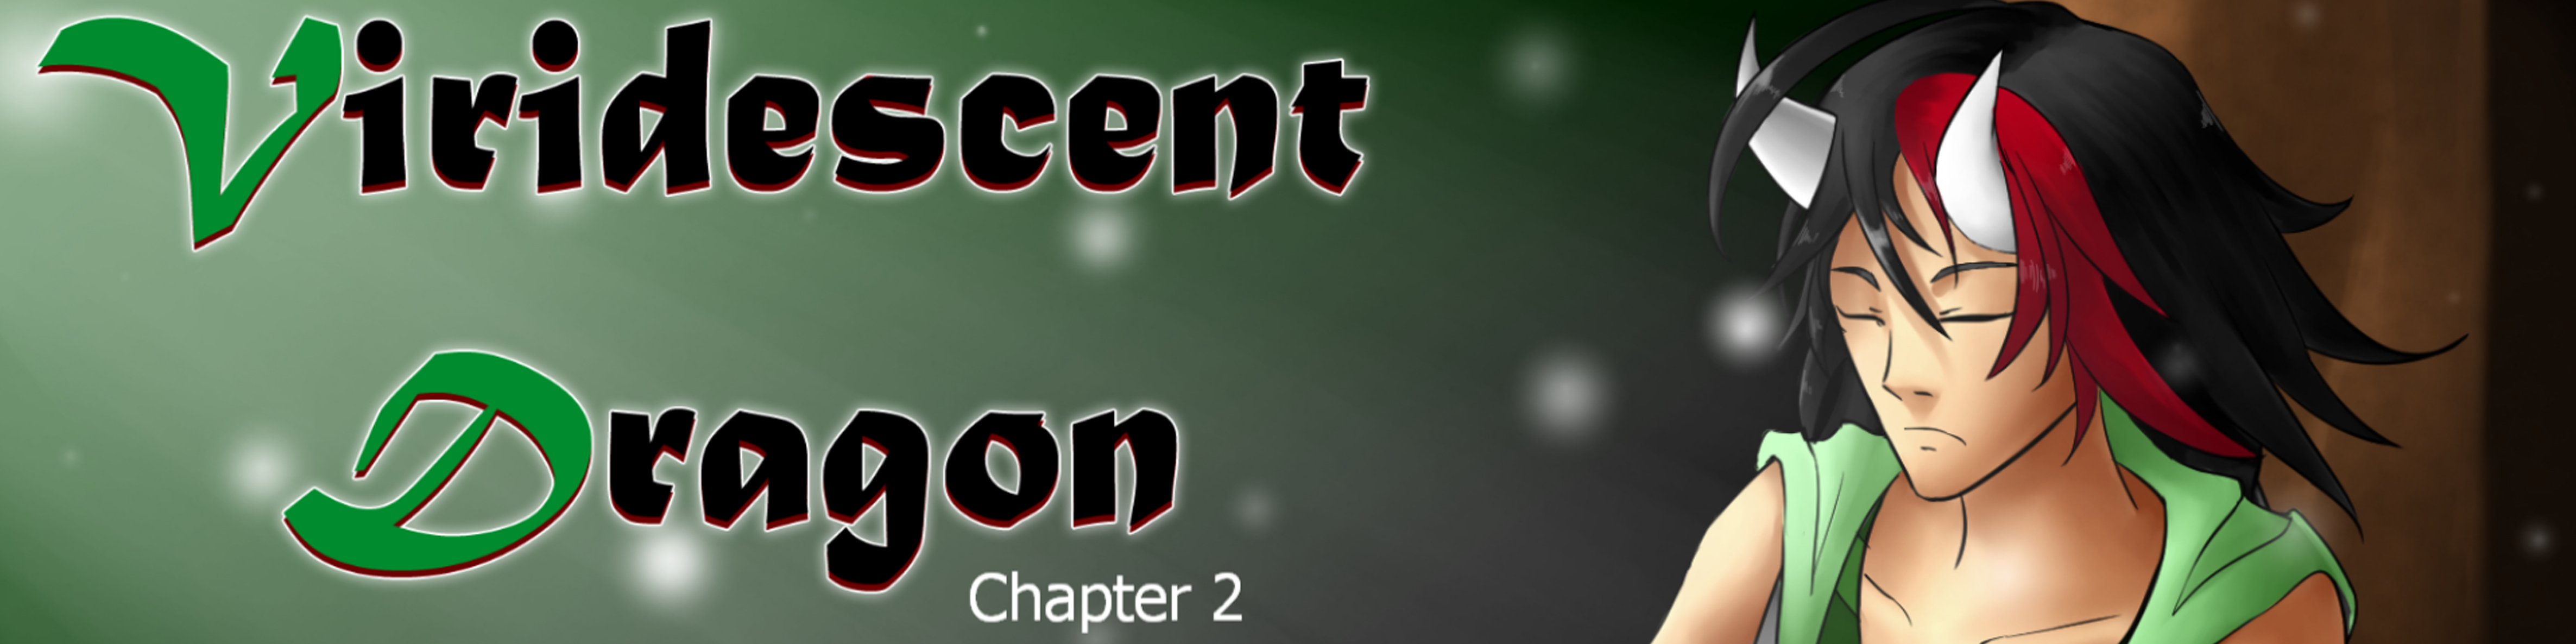 Viridescent Dragon: Chapter 2